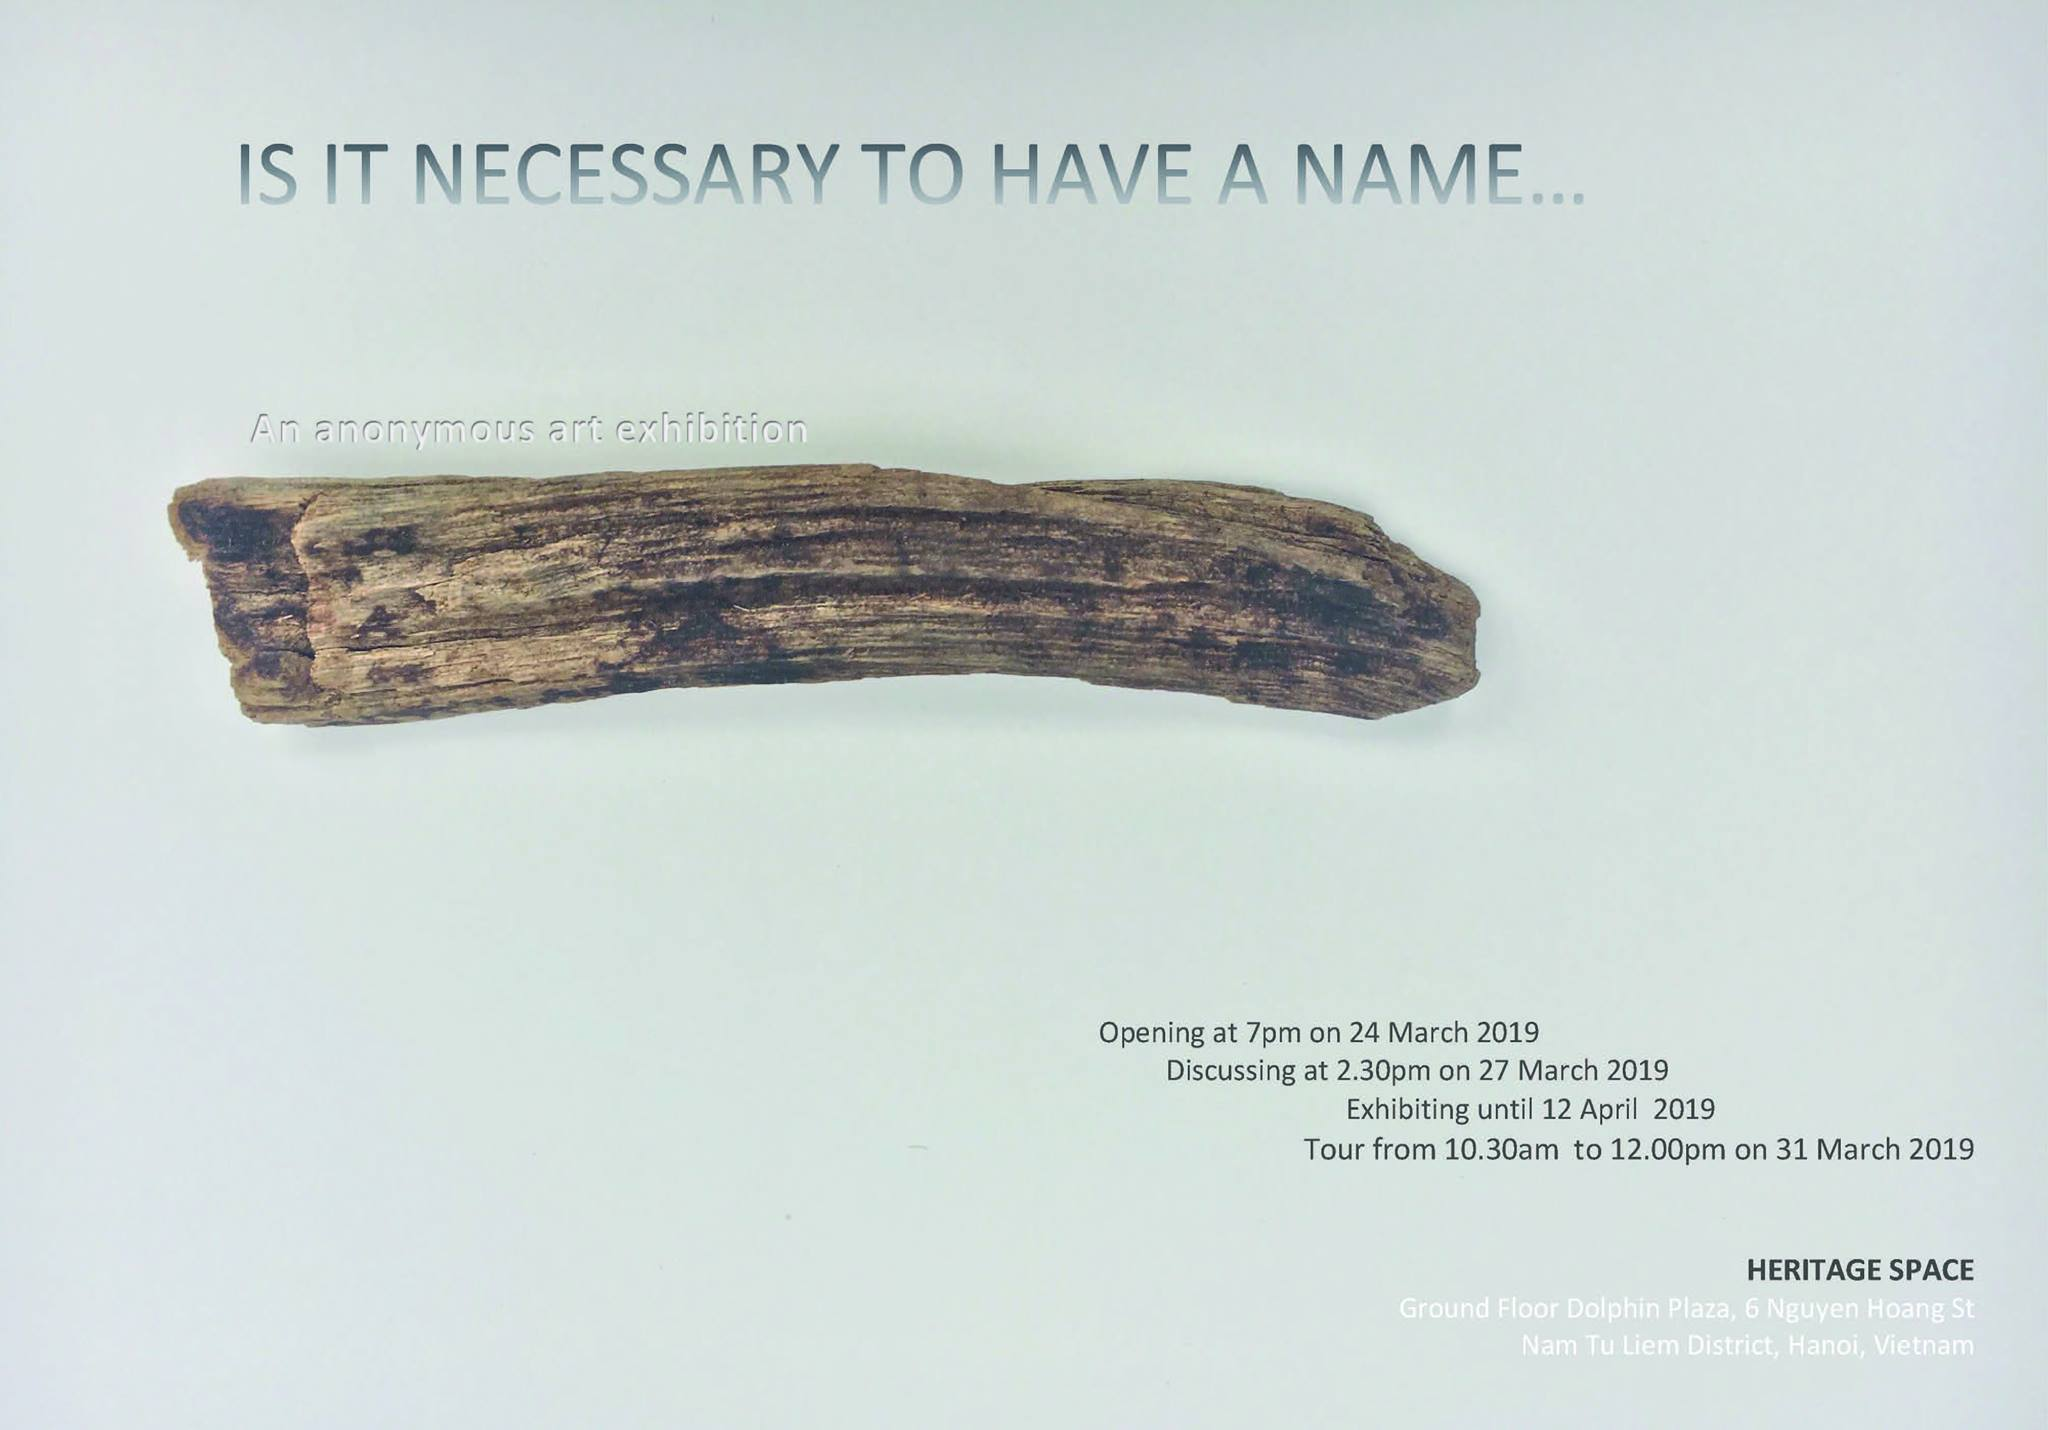 IS IT NECESSARY TO HAVE A NAME... at HERITAGE SPACE